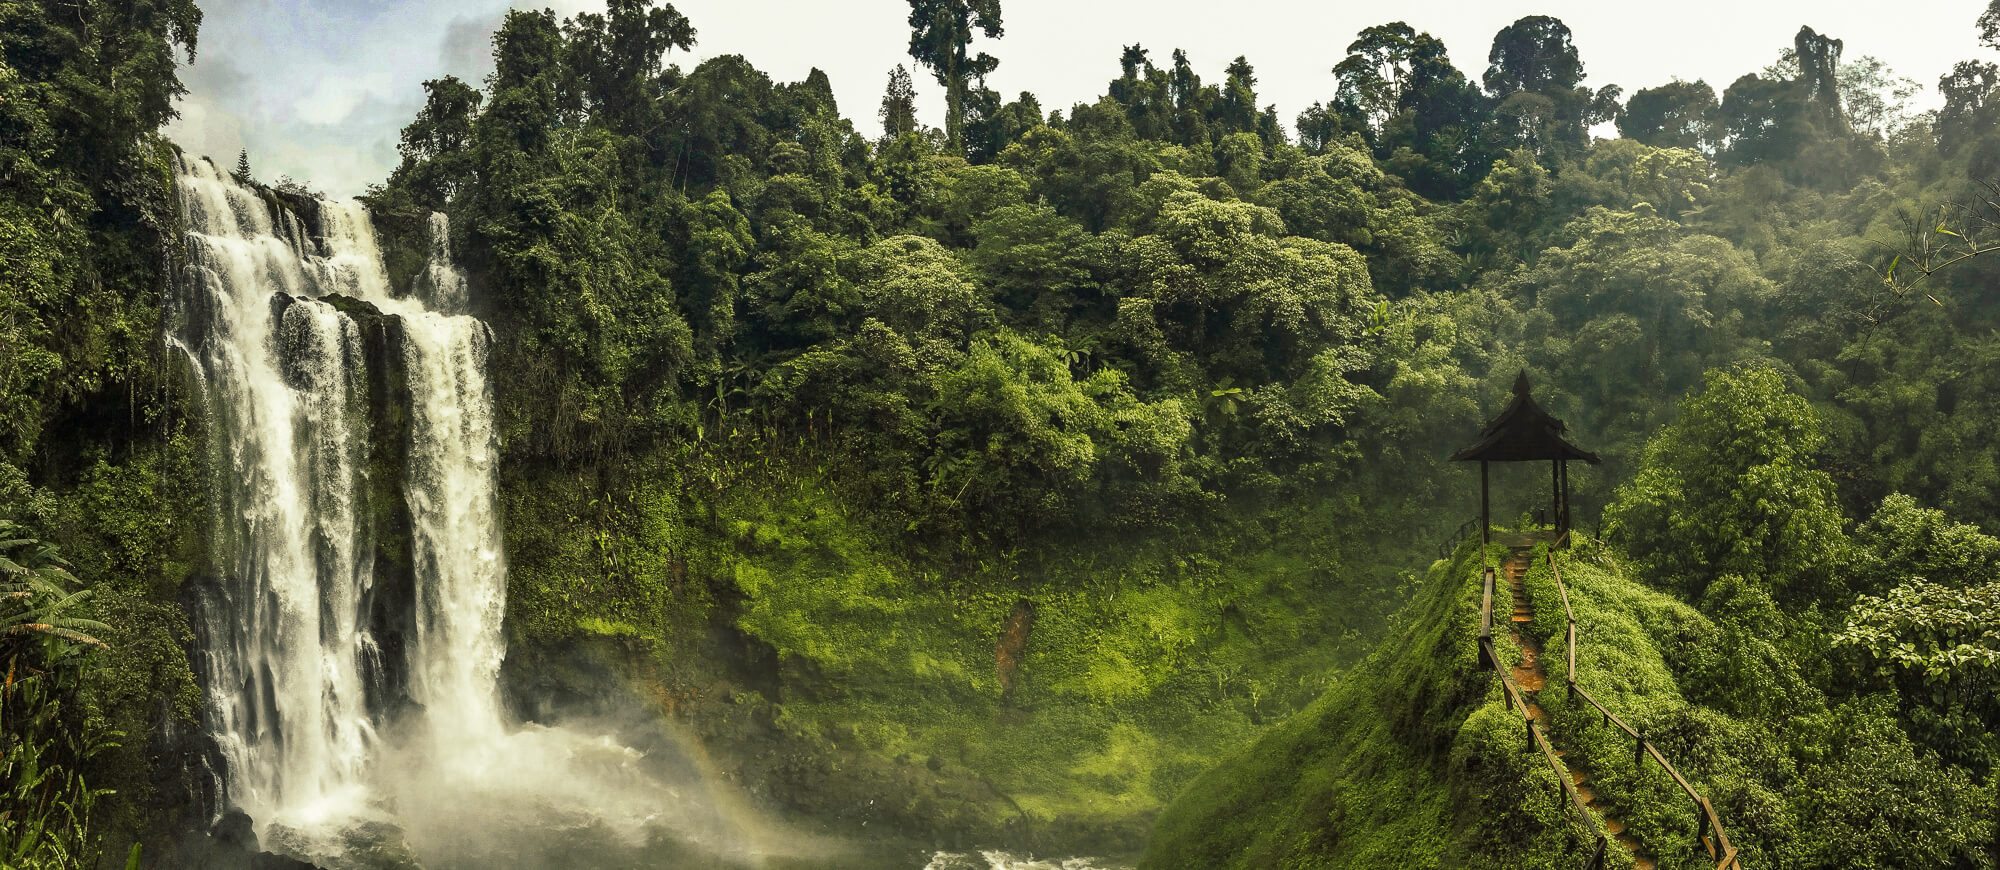 Chasse aux cascades au Laos Tad Yuang panorama